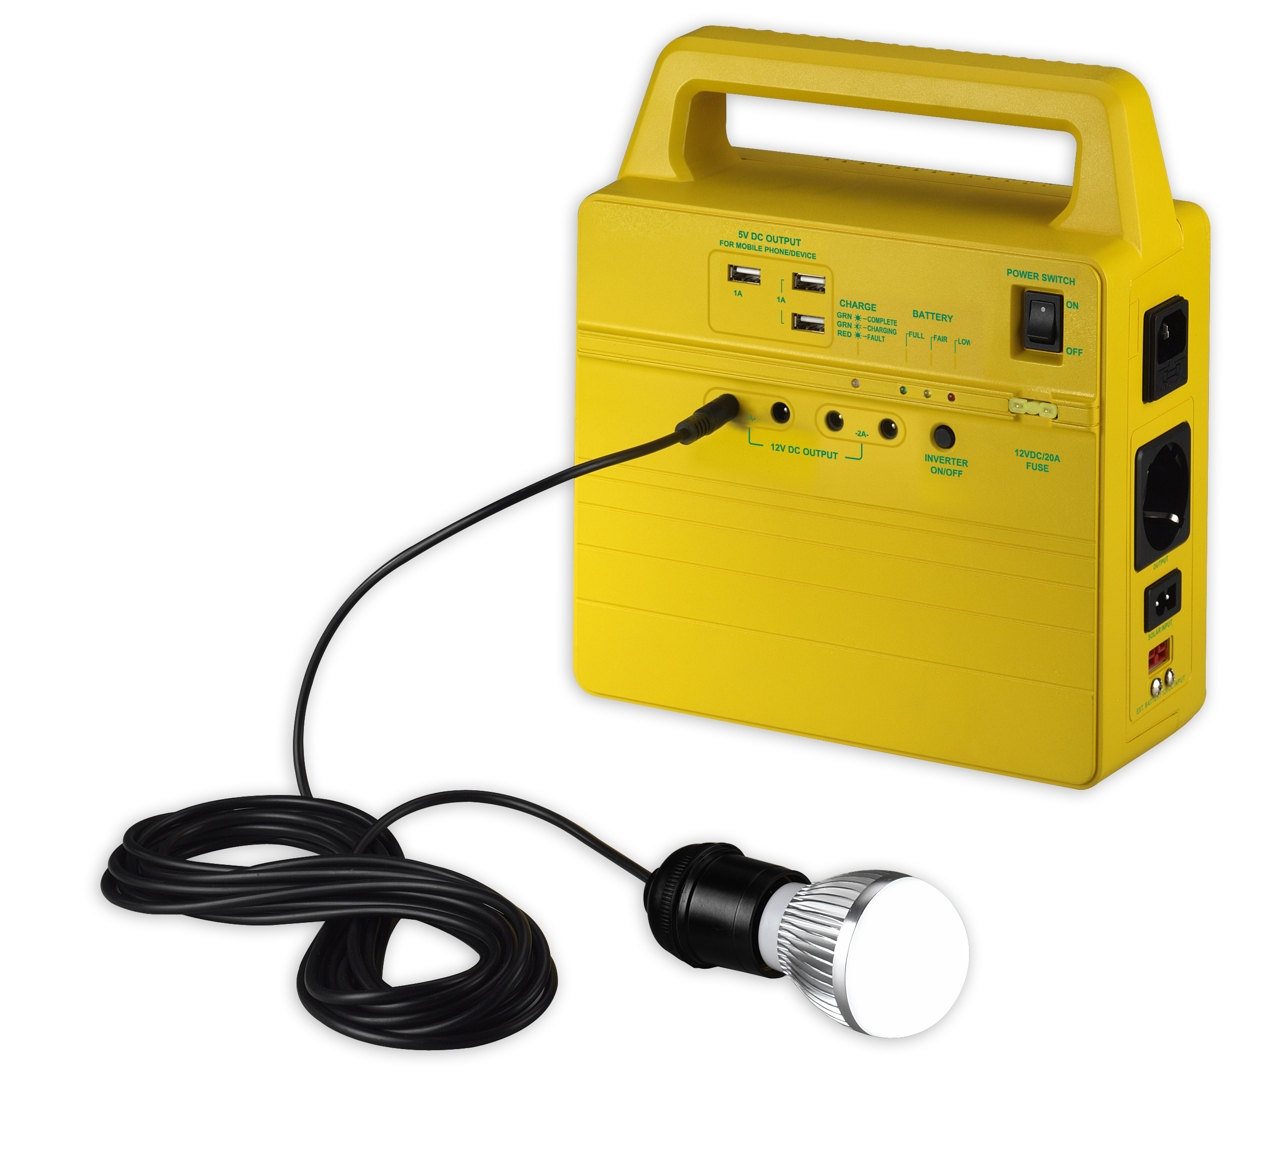 Taiwan 100w All In One Portable Solar Generator Handy Kit Fuse Box Battery Cell Charger And Module